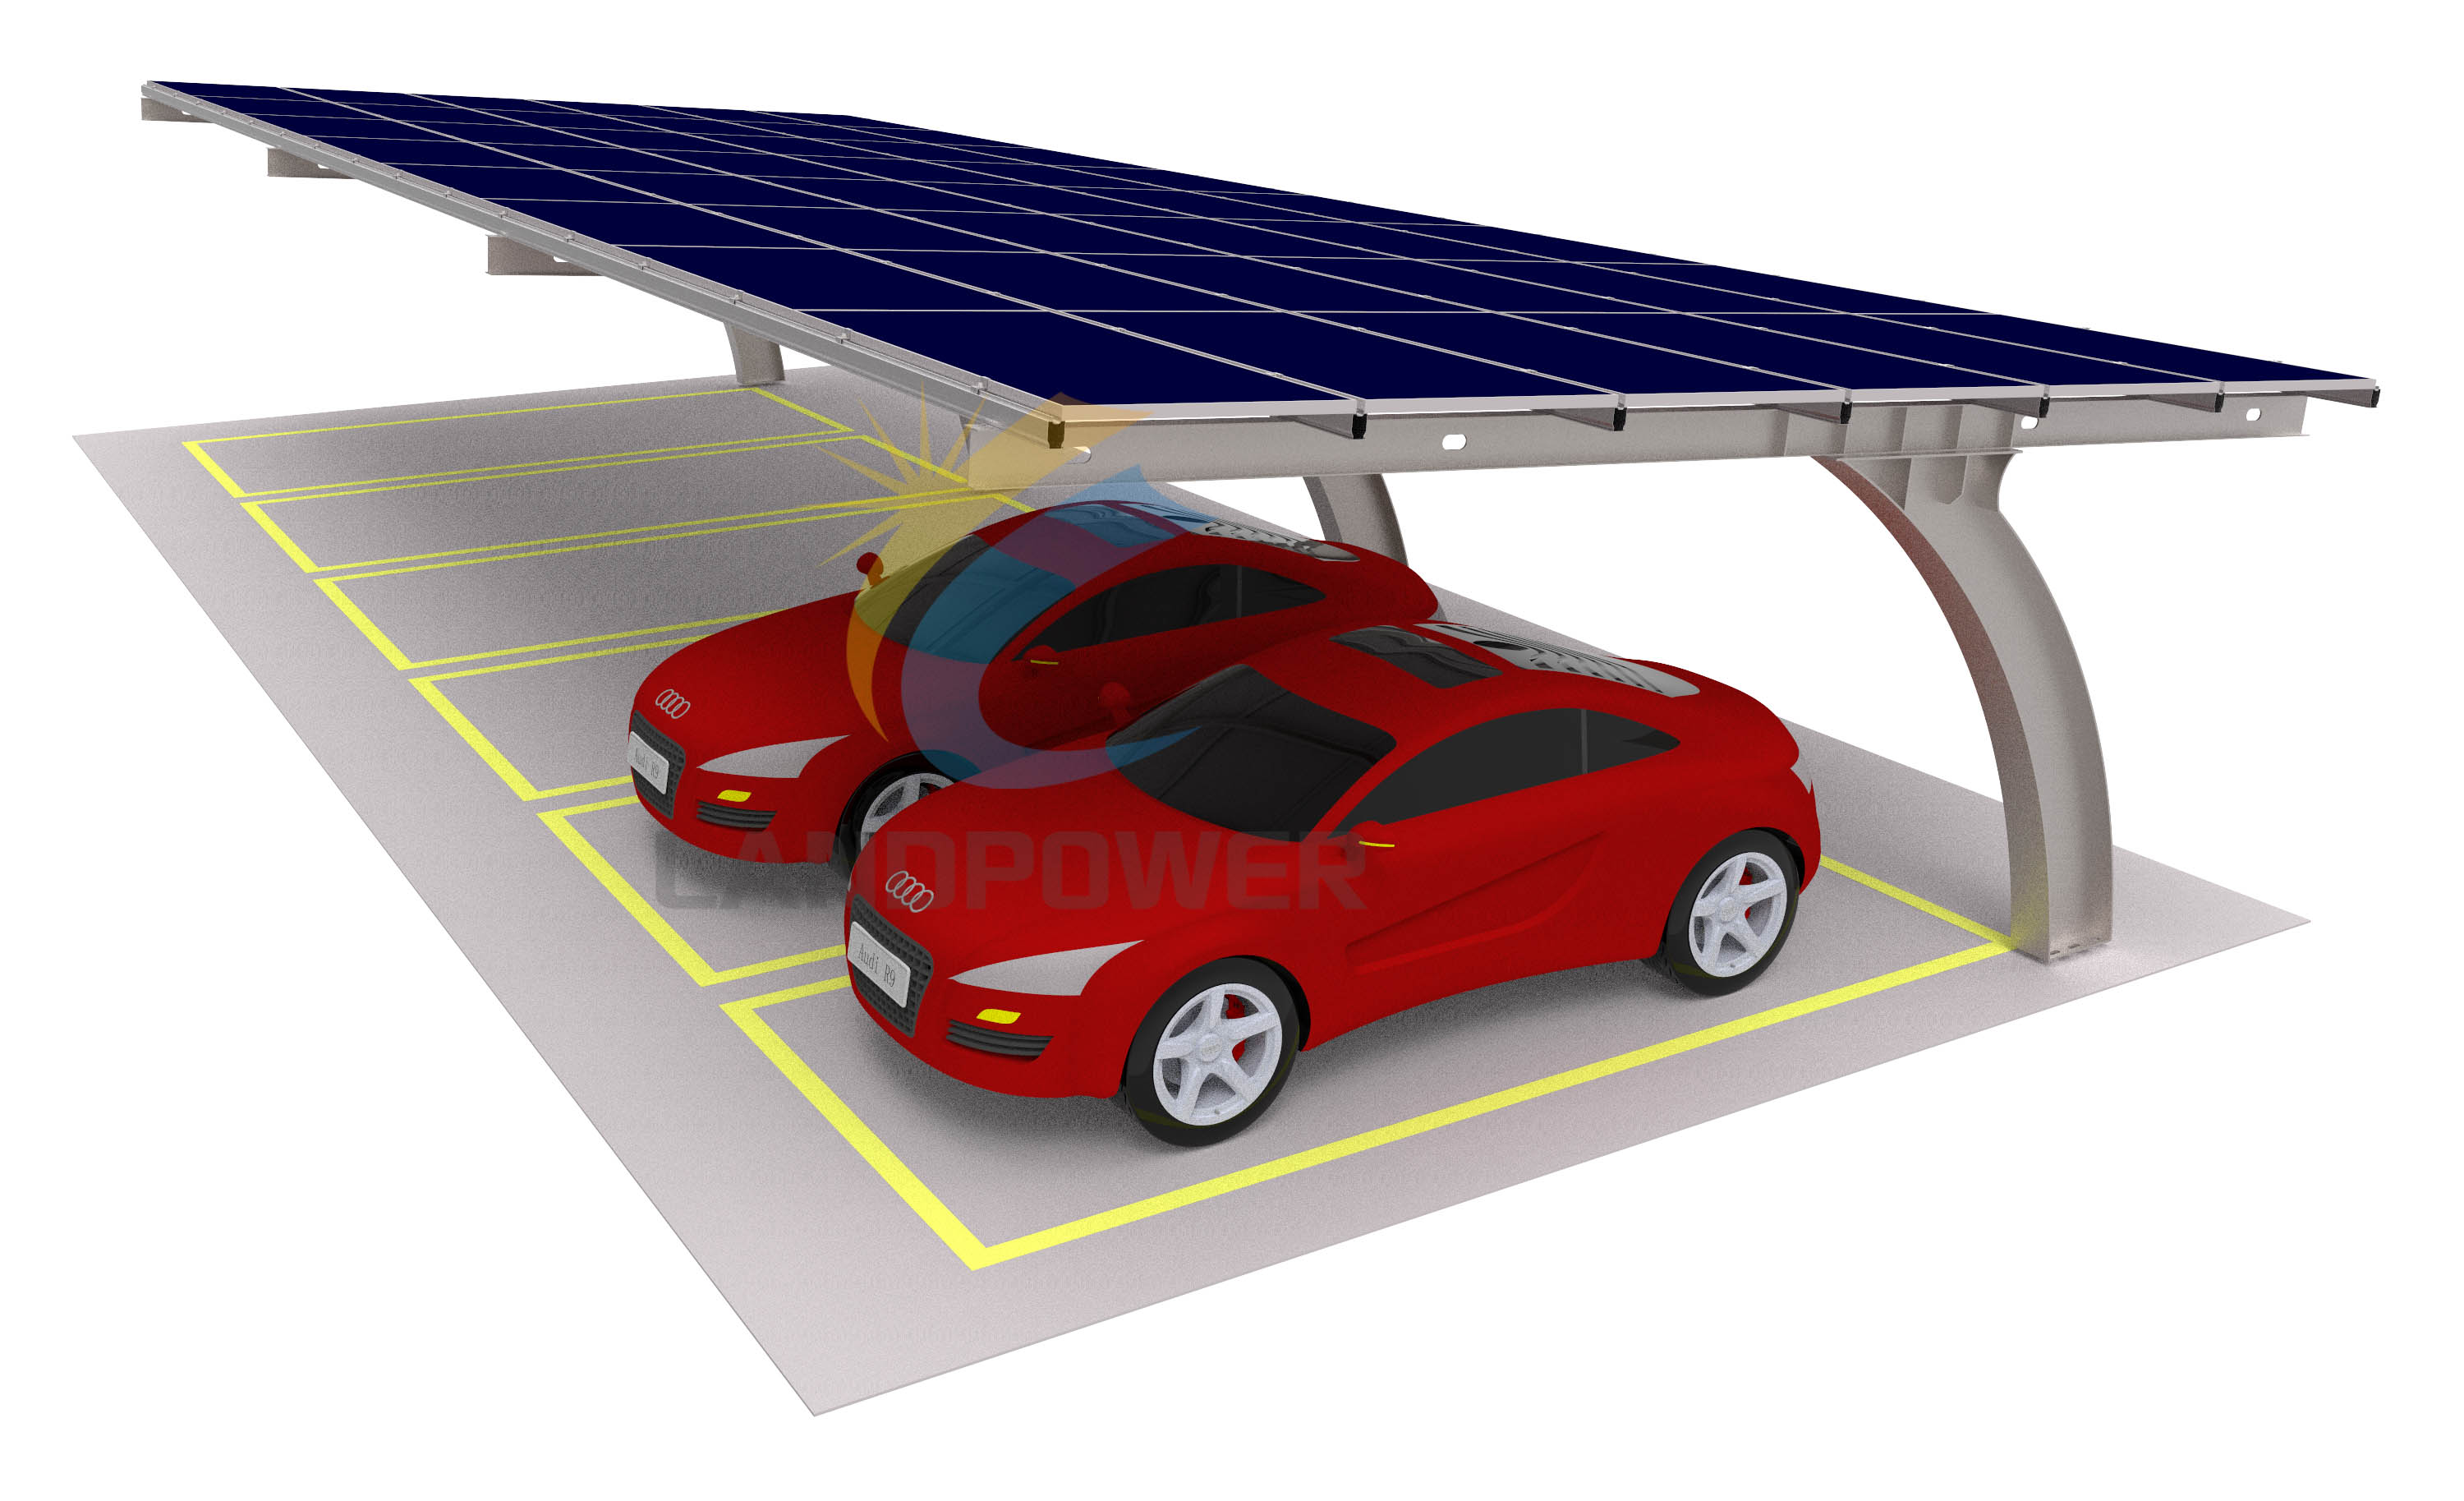 Solar Pv Carport Mounting System Solar Mounting Systems